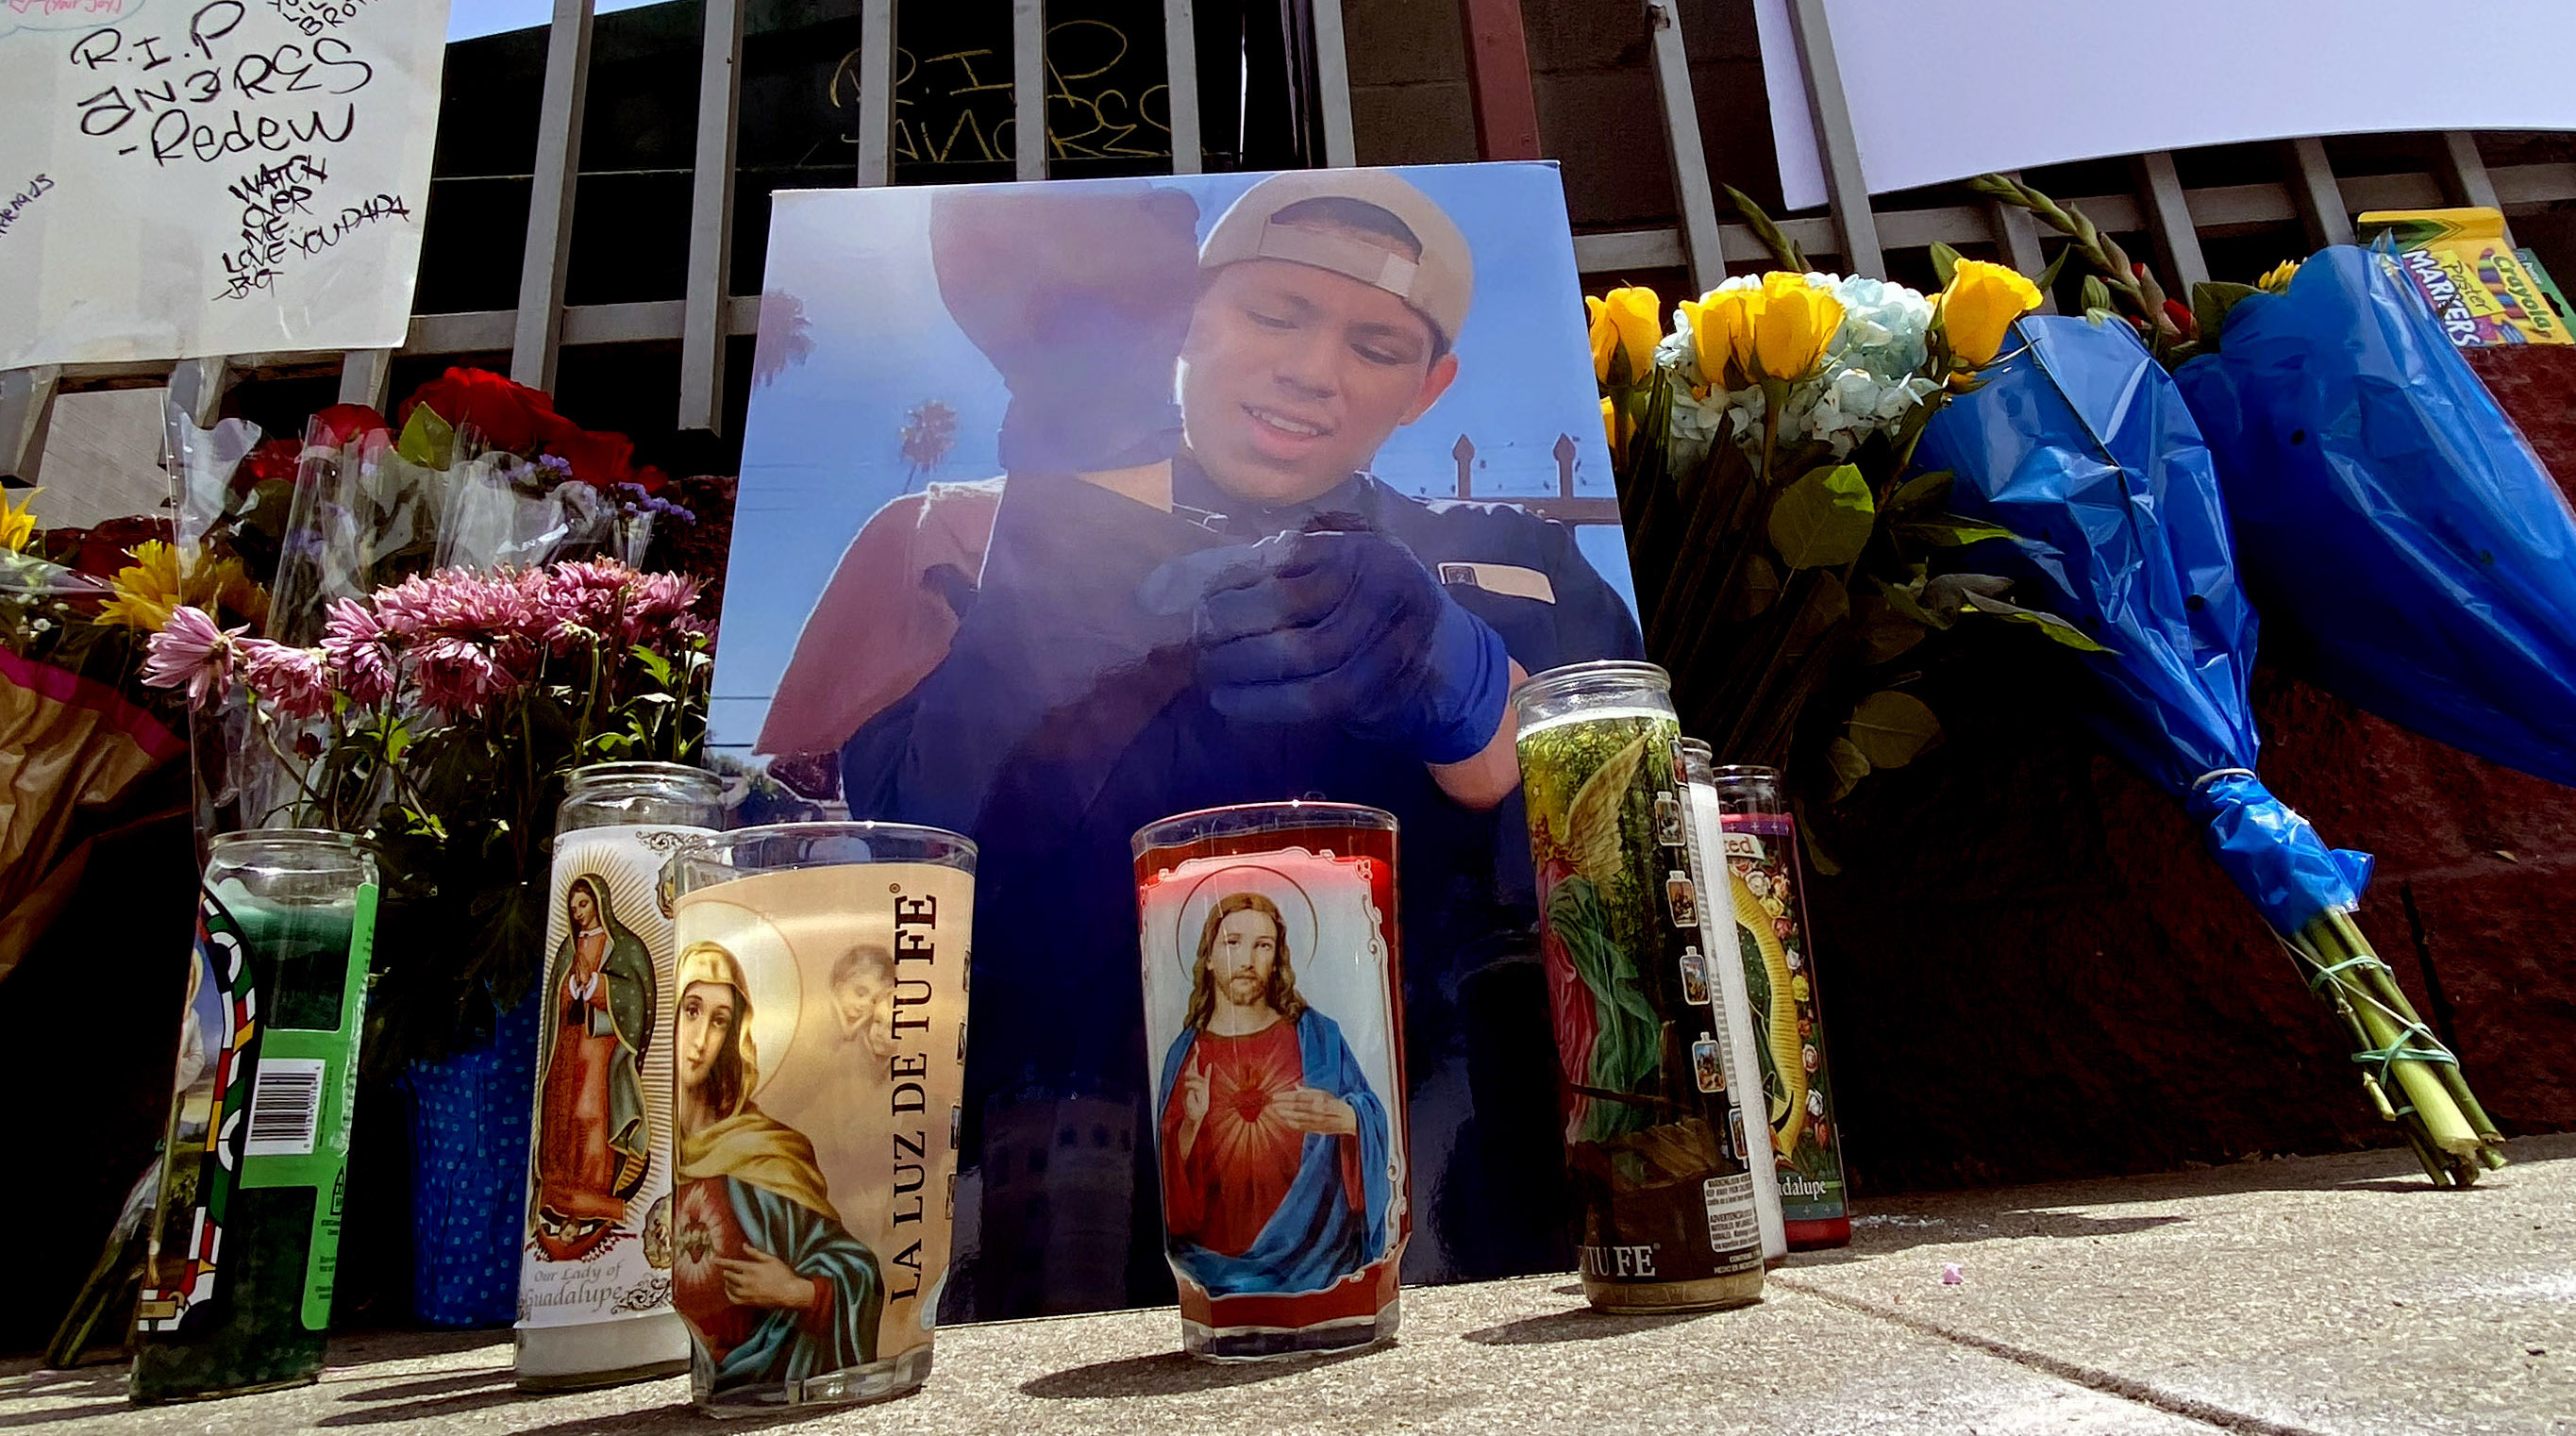 Sheriff Promises to Release Video, Search Warrant, Other Findings in Killing of Man Near Gardena